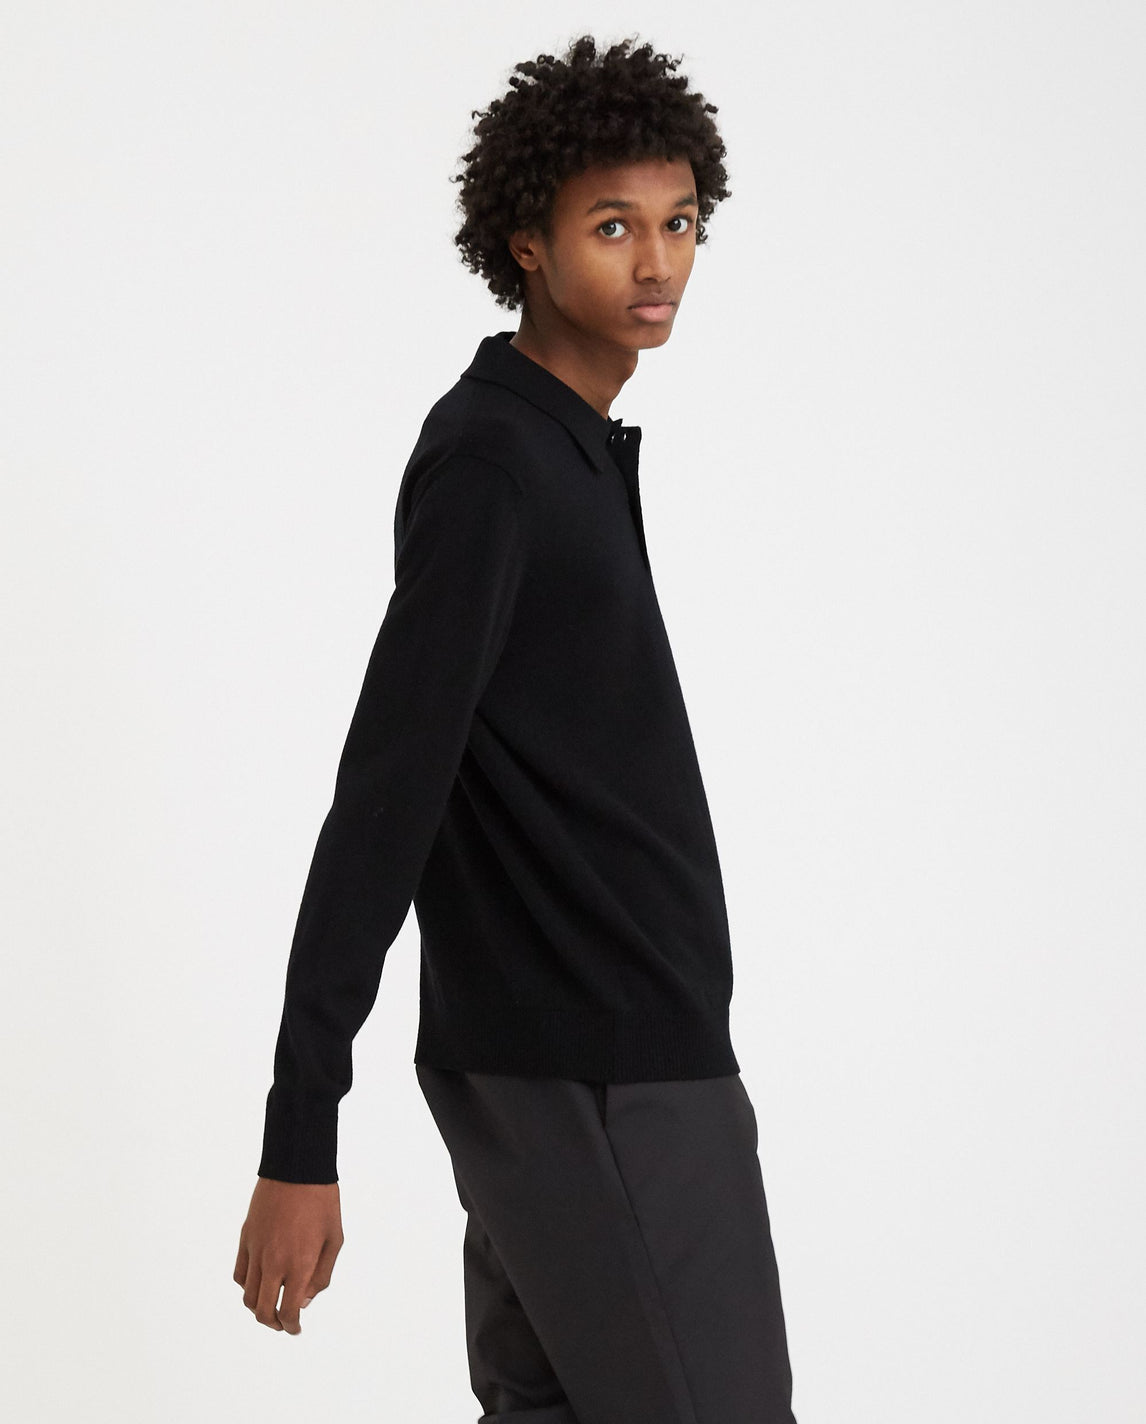 Knitted Polo - Black MENS A-COLD-WALL*